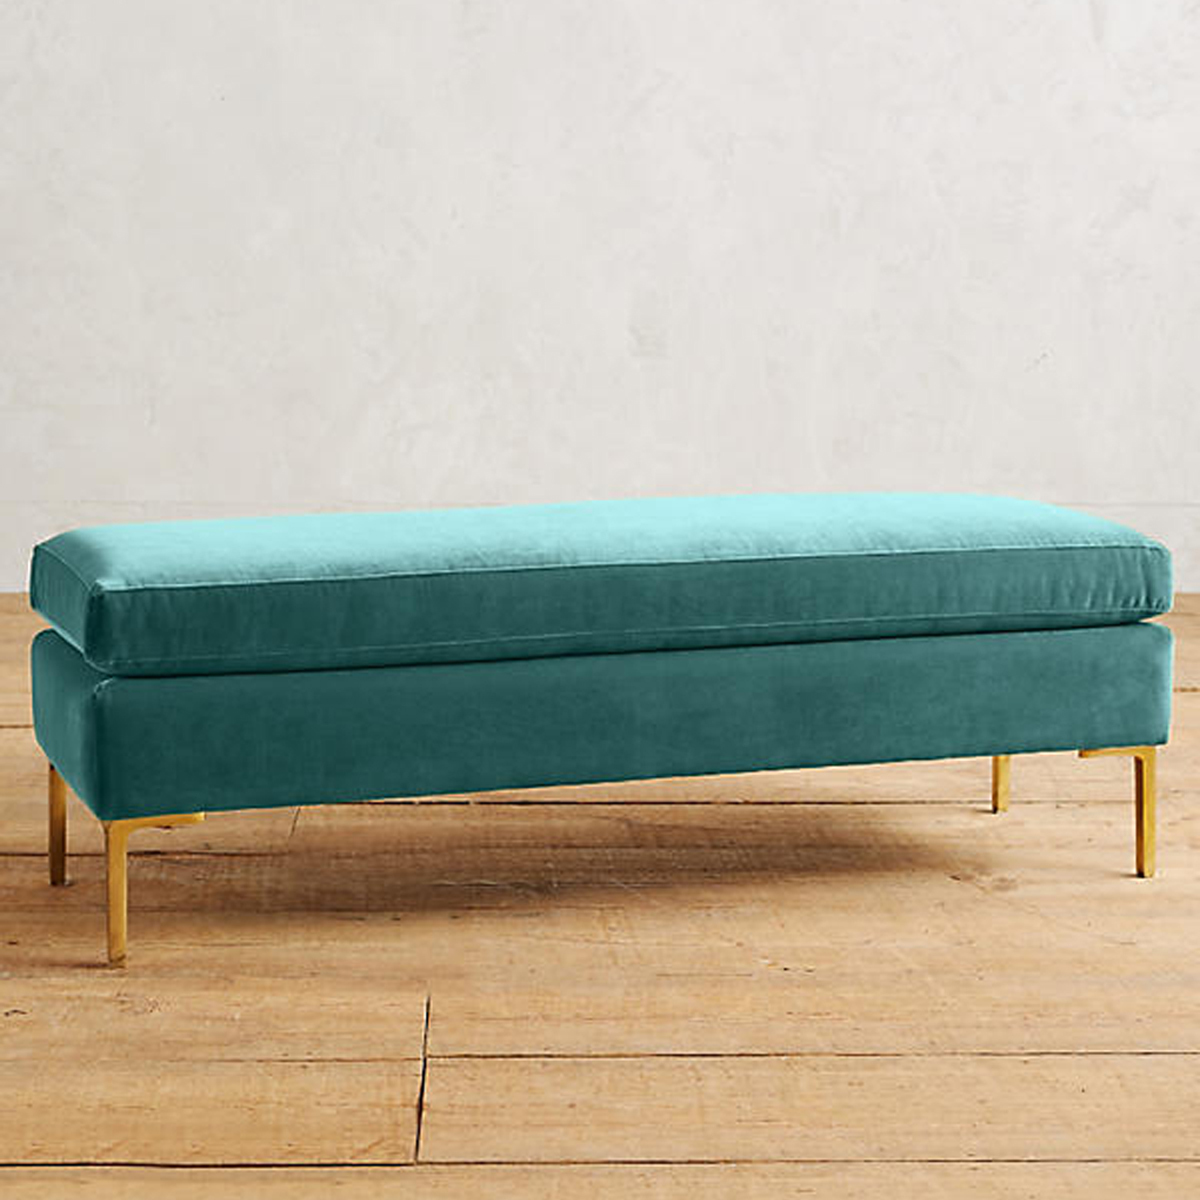 Teal vlevet bench with gold legs. photo